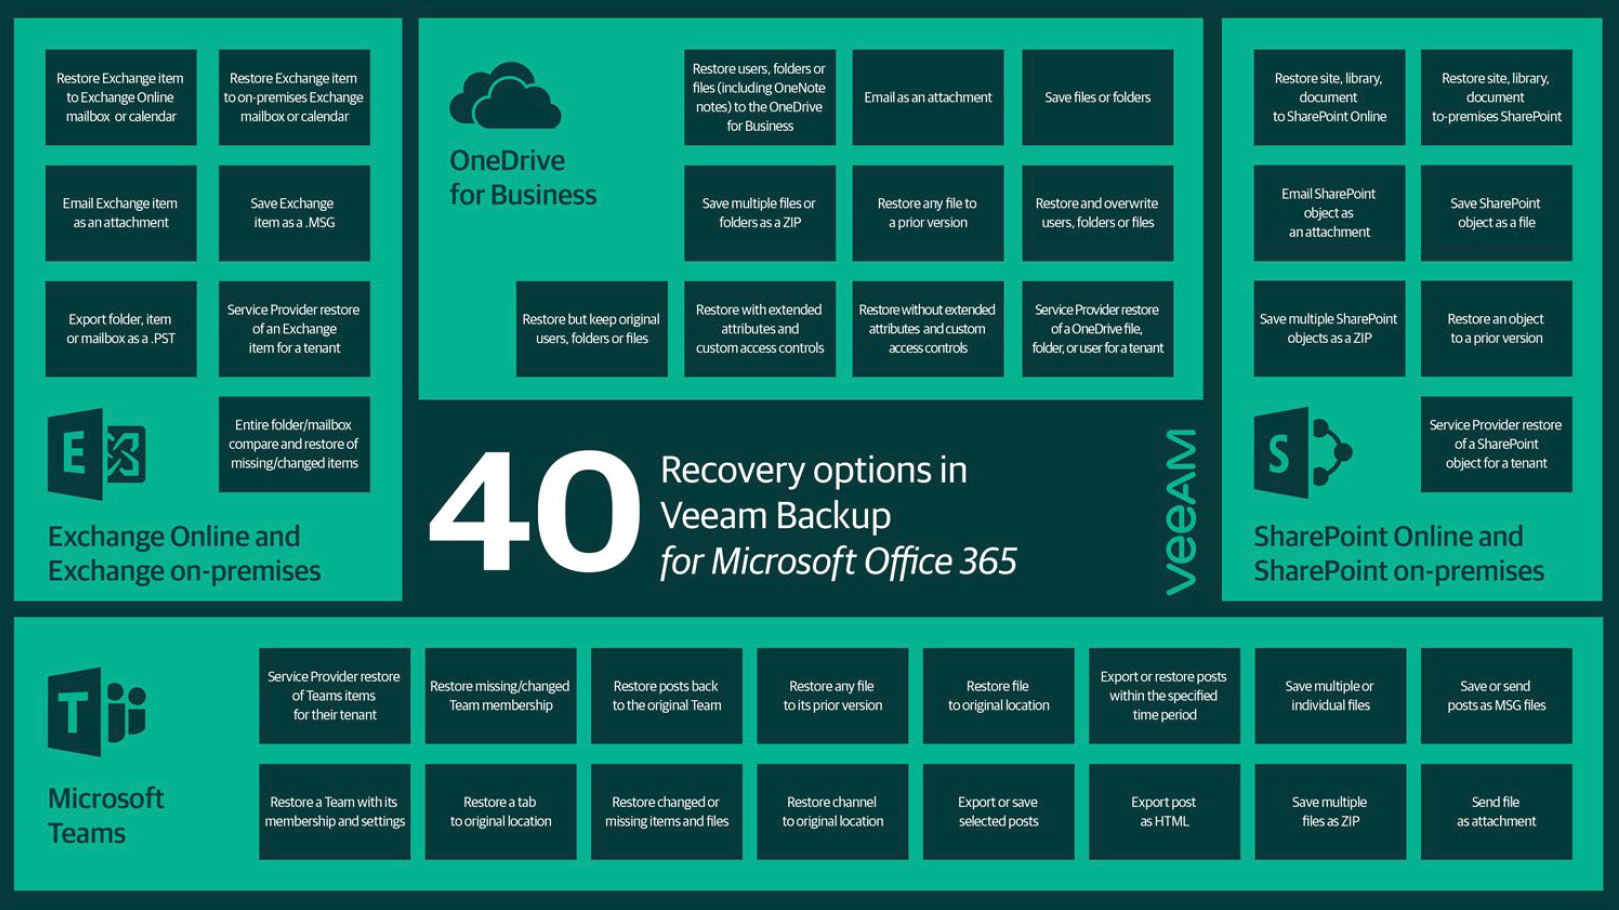 Recovery options in Veeam Backup for Microsoft Office 365